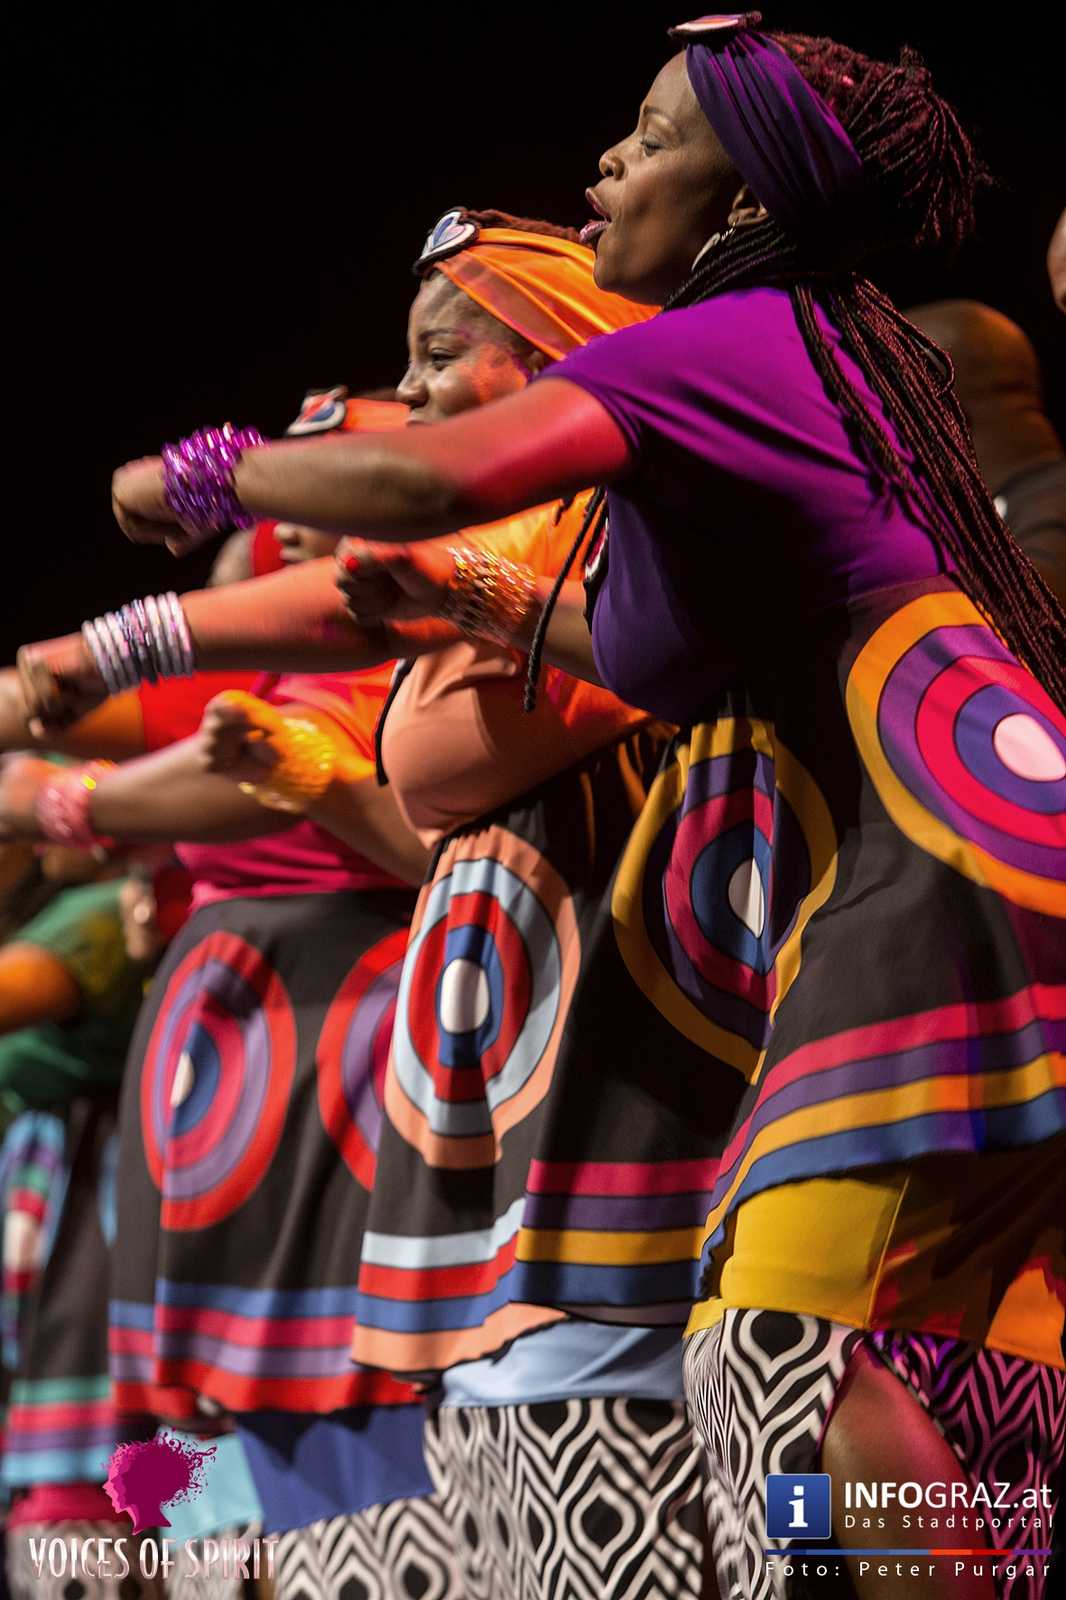 soweto gospel choir internationales chorfestival statdthalle graz voices of spirit eroeffnung festivals 2016 015